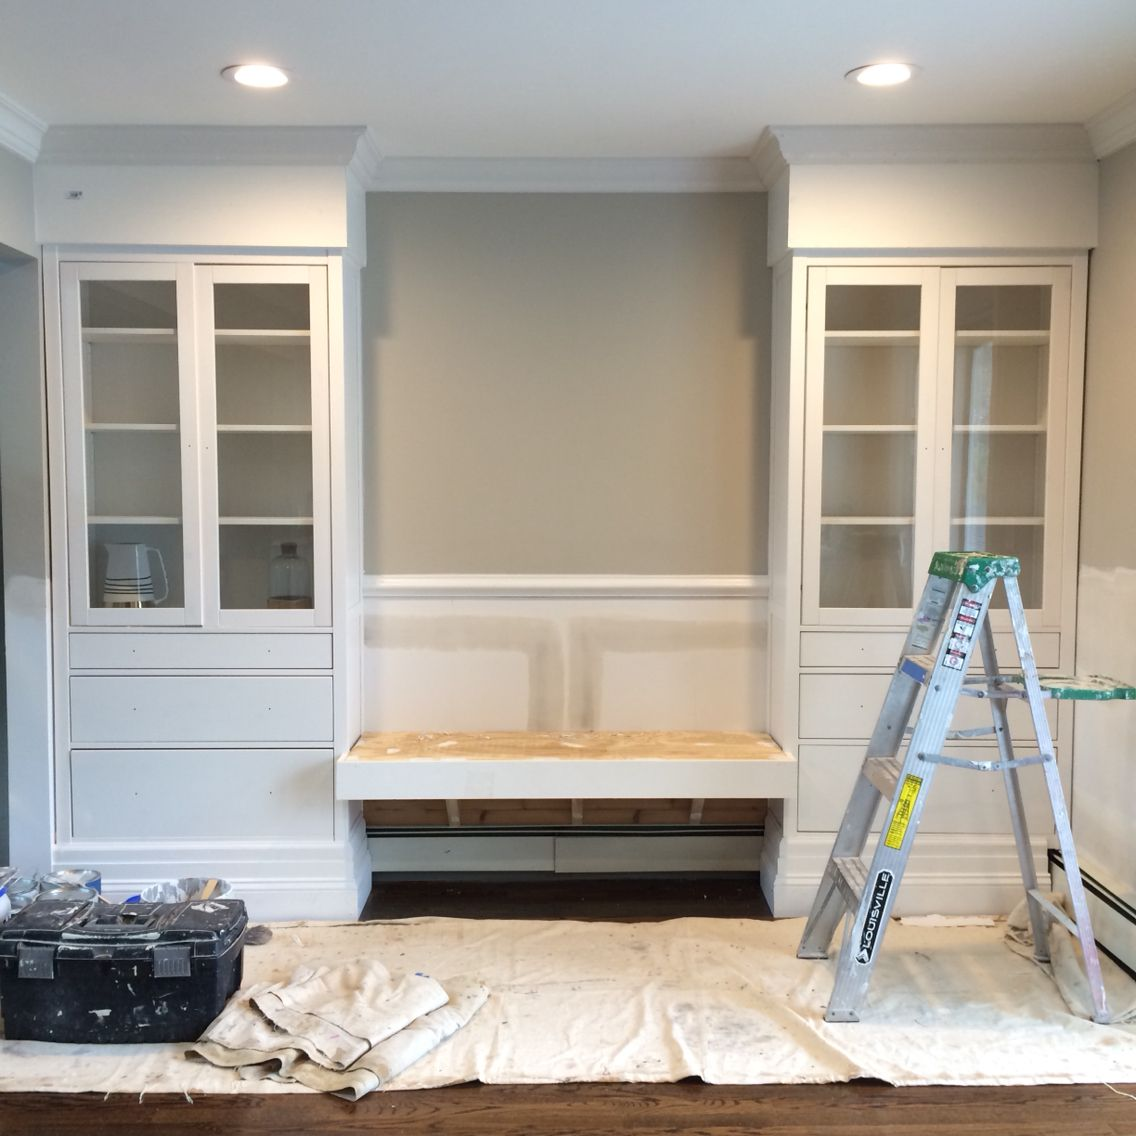 Hemnes Cabinets From Ikea W Extra Molding To Look Like Built Ins